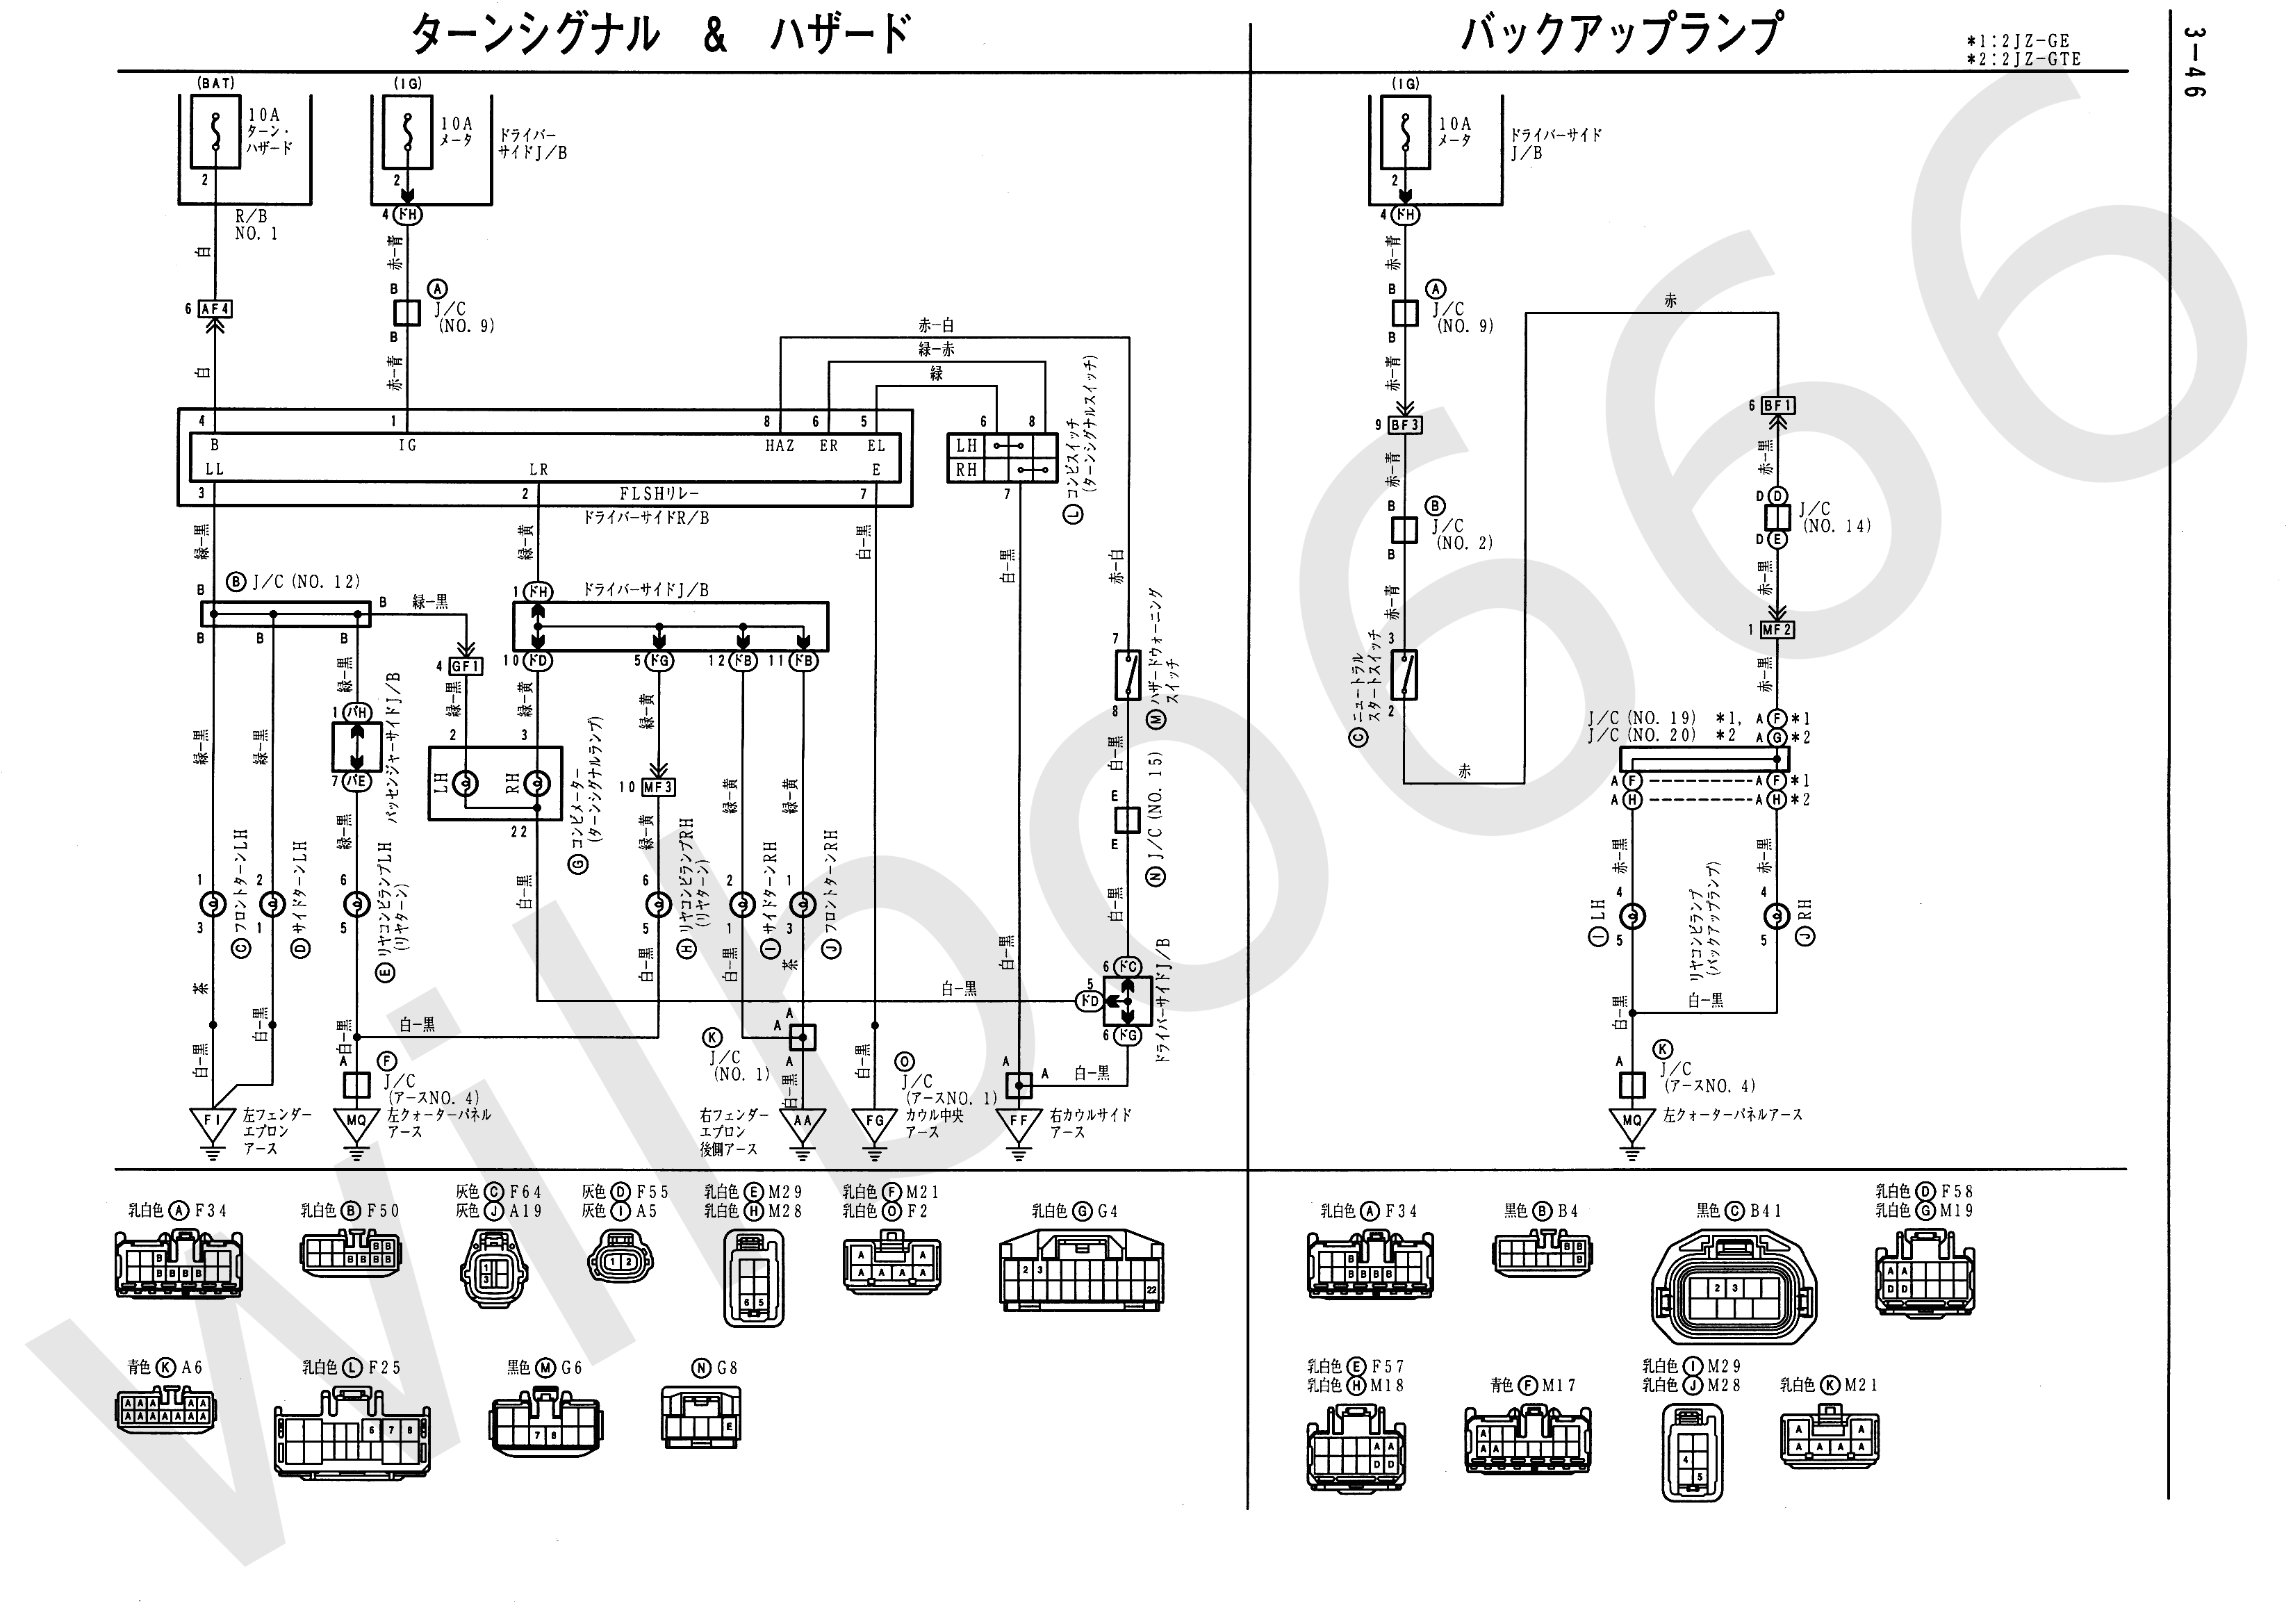 JZS161 Electrical Wiring Diagram 6748505 3 46?resize\\\\=665%2C471 97 camry solenoid wiring diagram 97 camry repair manual, 97 camry  at eliteediting.co